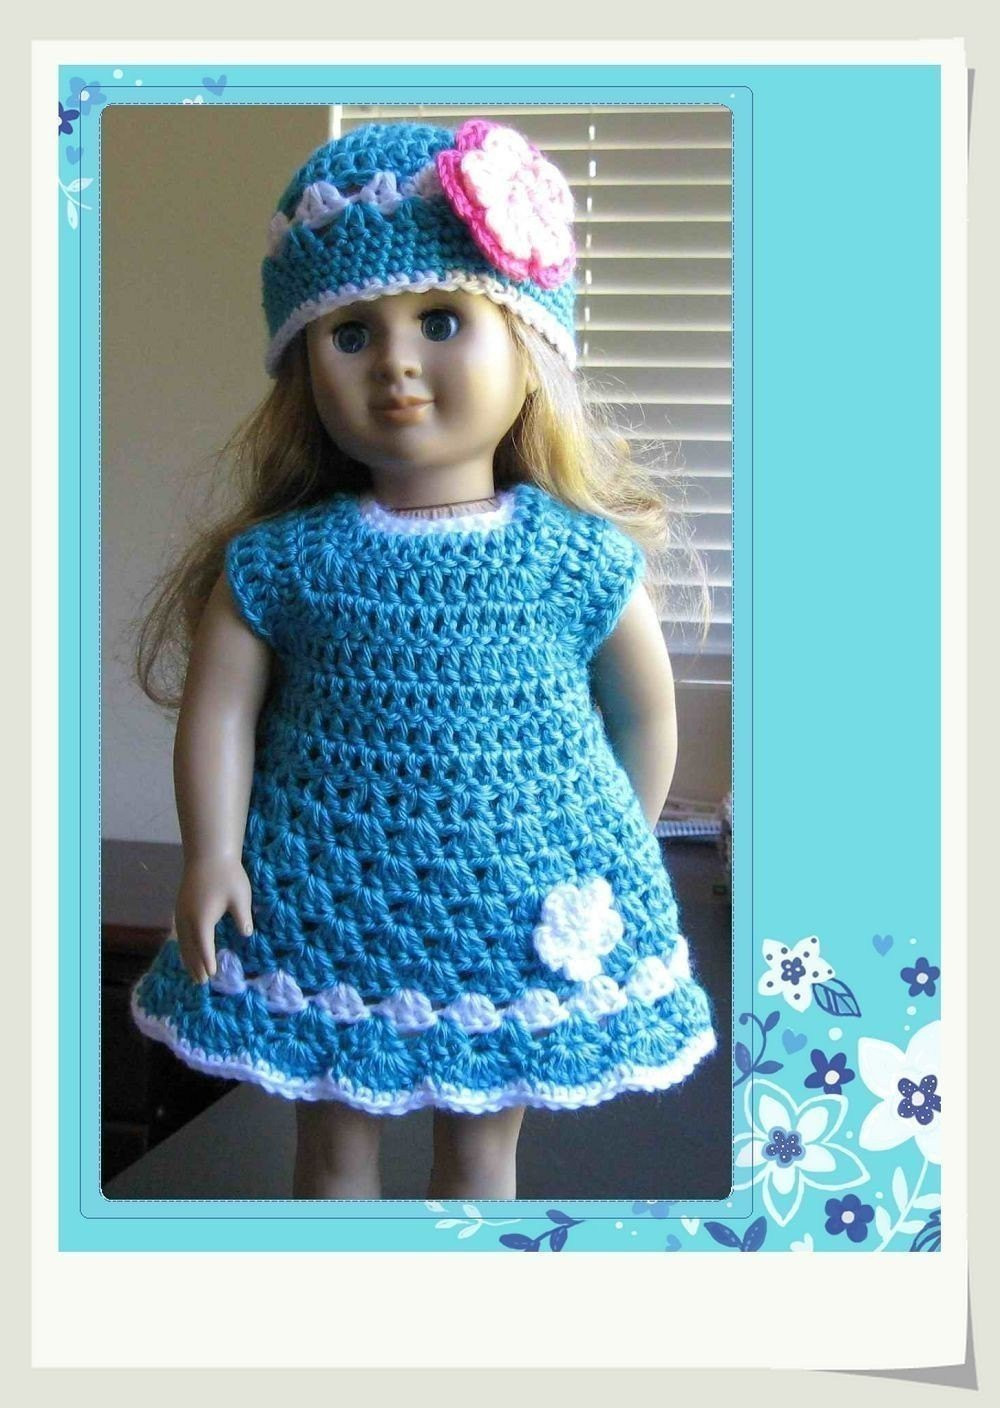 Awesome Pattern Crocheted Doll Clothes Dress for American Girl Gotz American Girl Doll Crochet Patterns Of Adorable 47 Pics American Girl Doll Crochet Patterns